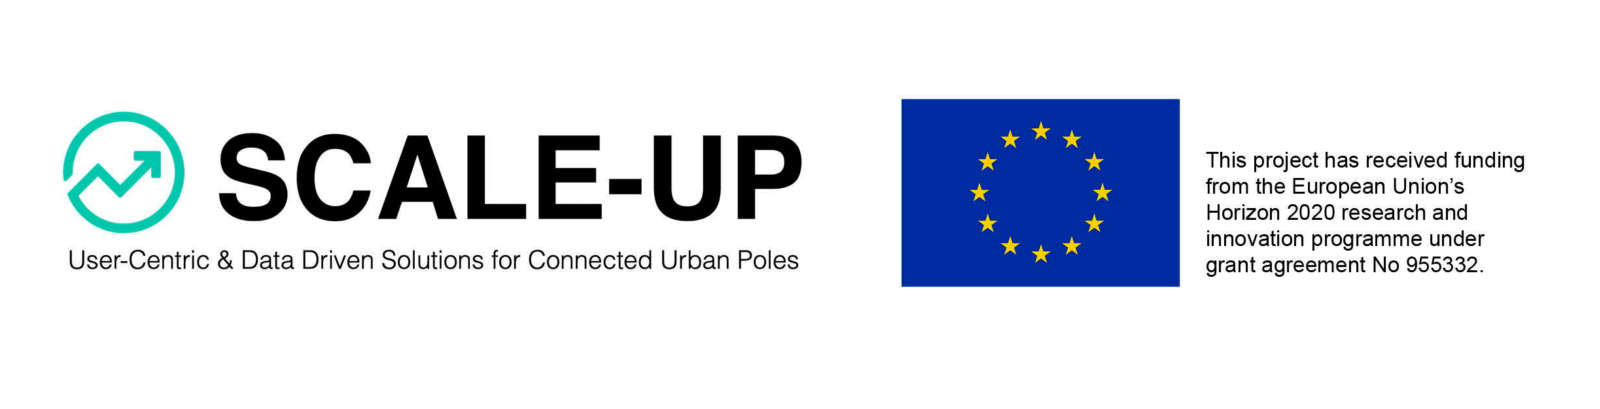 Scale up and europe logo